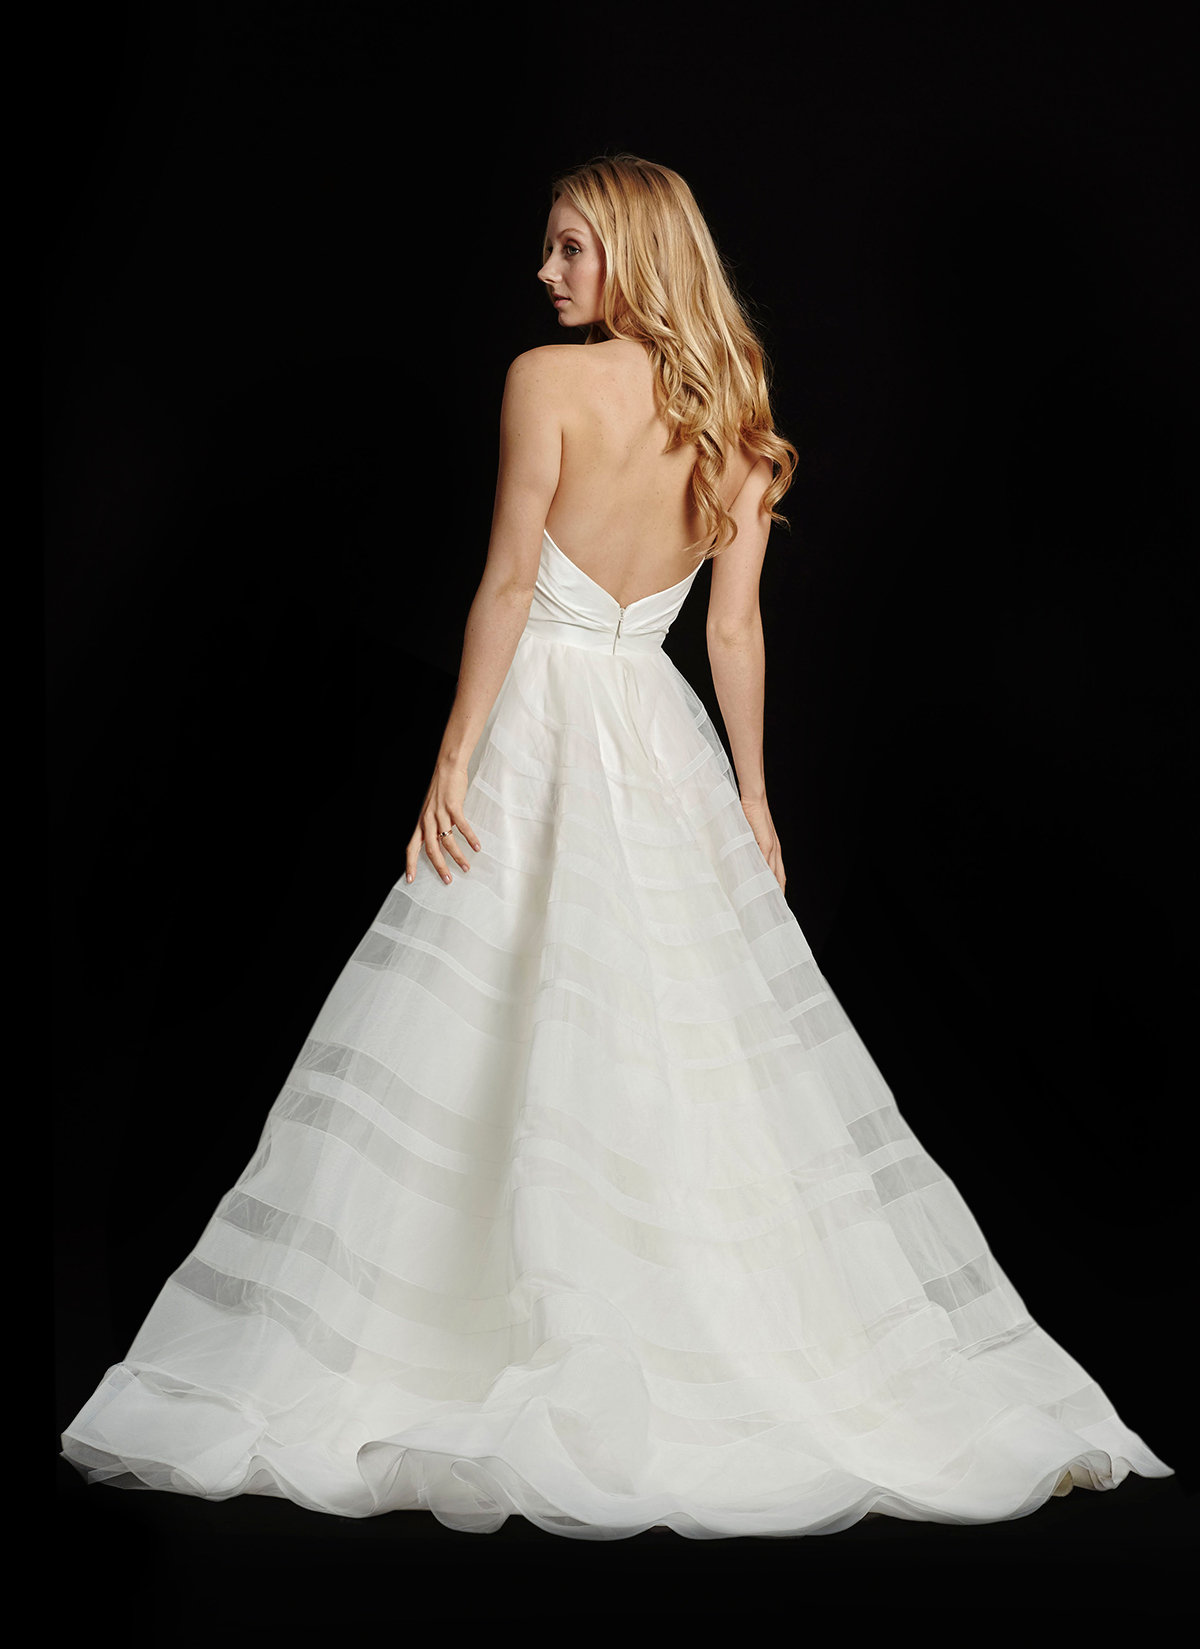 Bridal Gowns and Wedding Dresses by JLM Couture - Style 6614